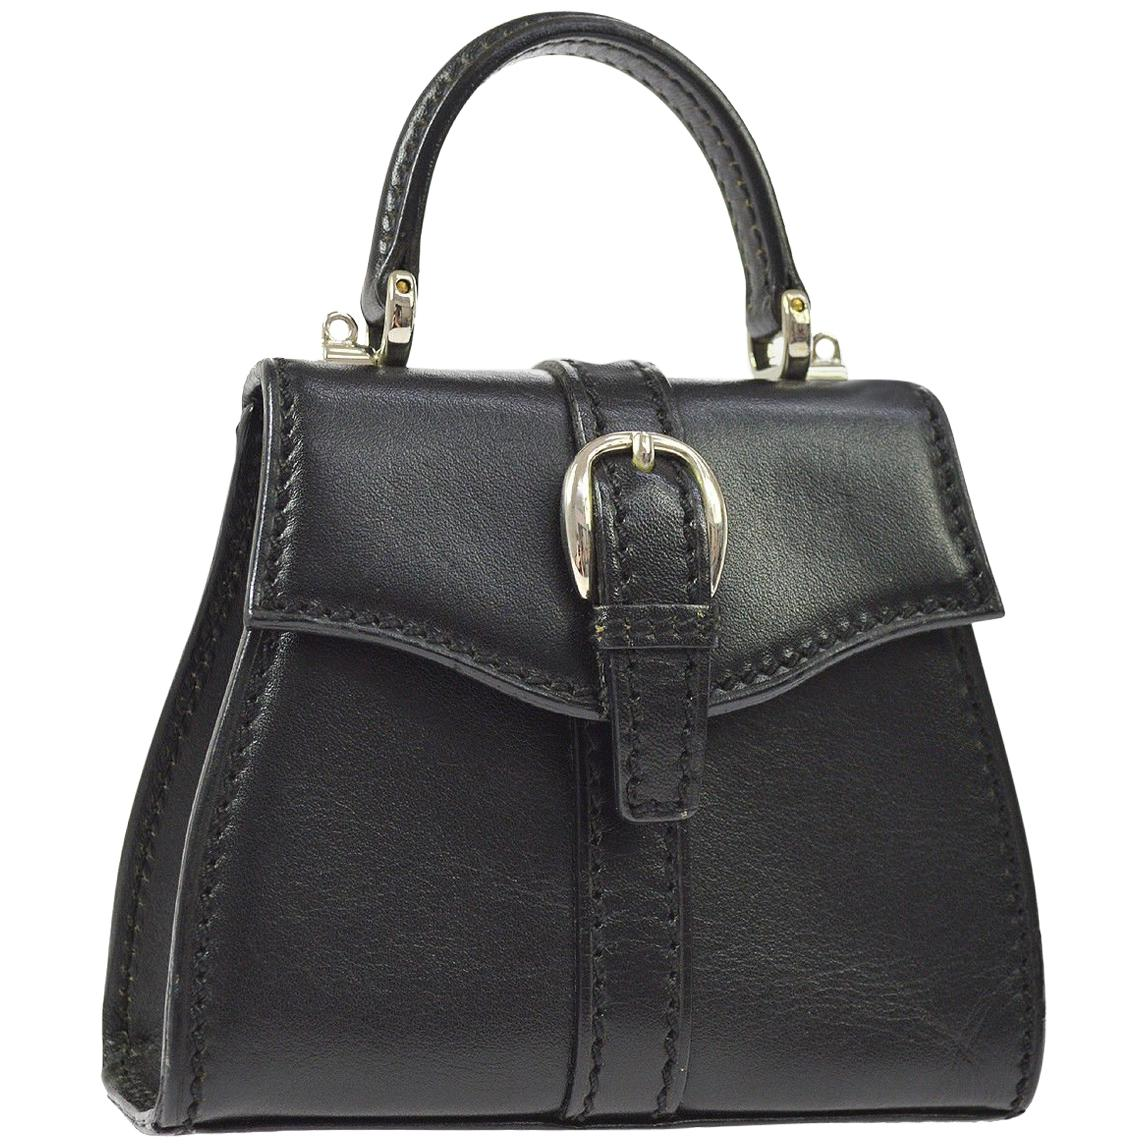 cef5b24d3192 Vintage Gucci Top Handle Bags - 272 For Sale at 1stdibs - Page 3